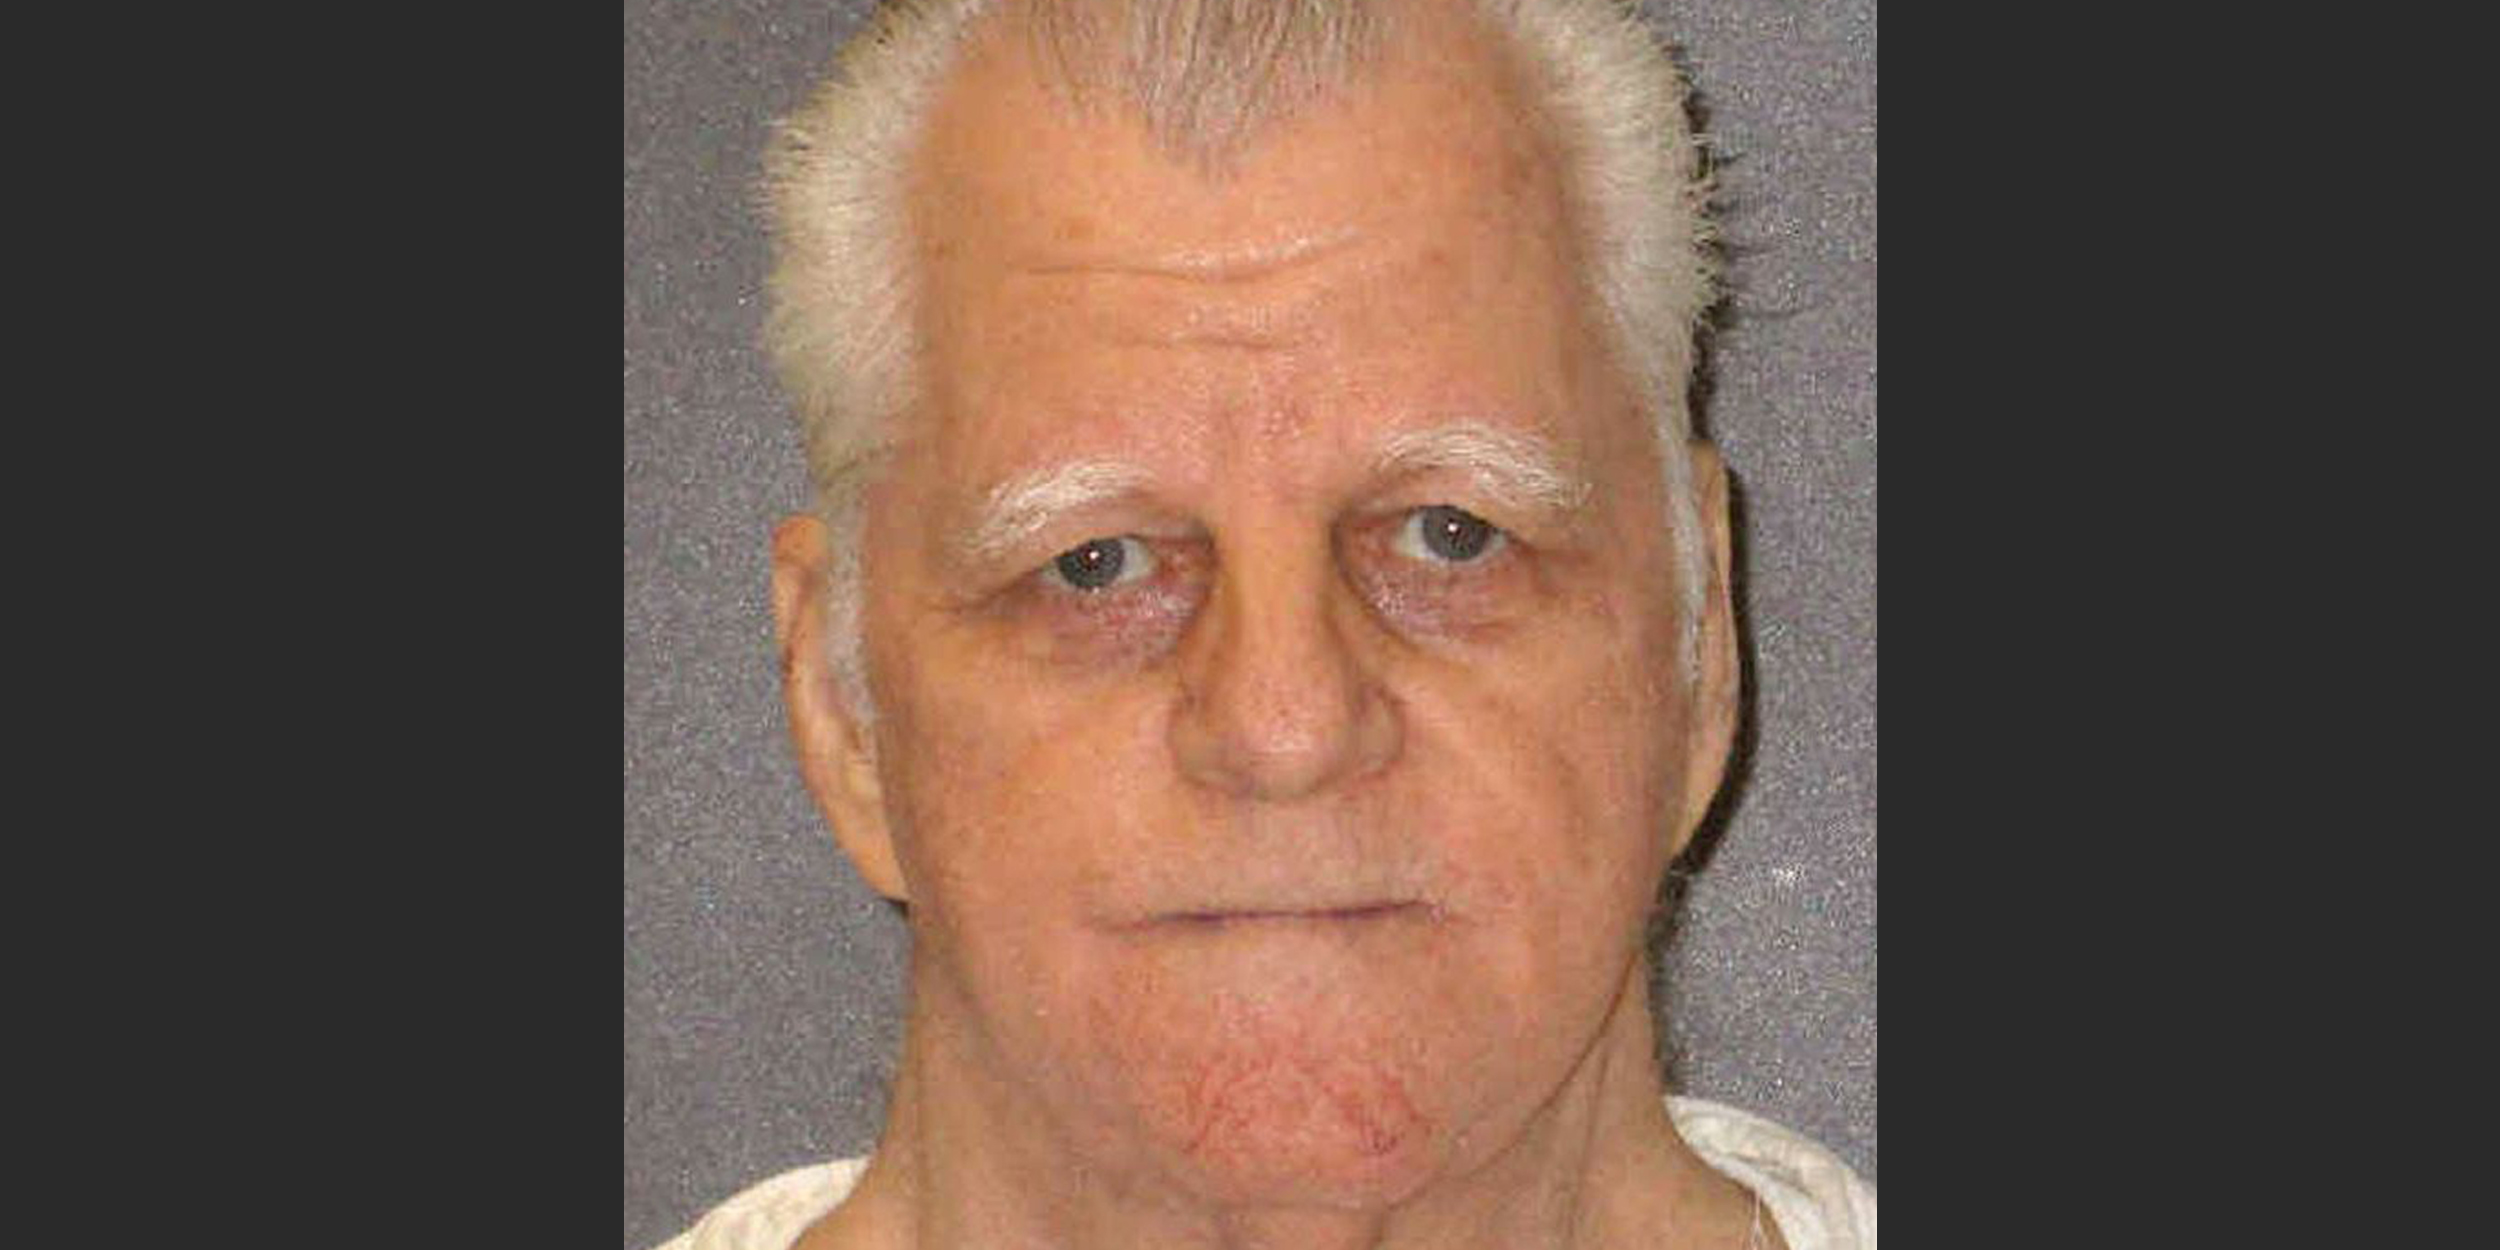 Moments before execution, Texas killer tells witnesses